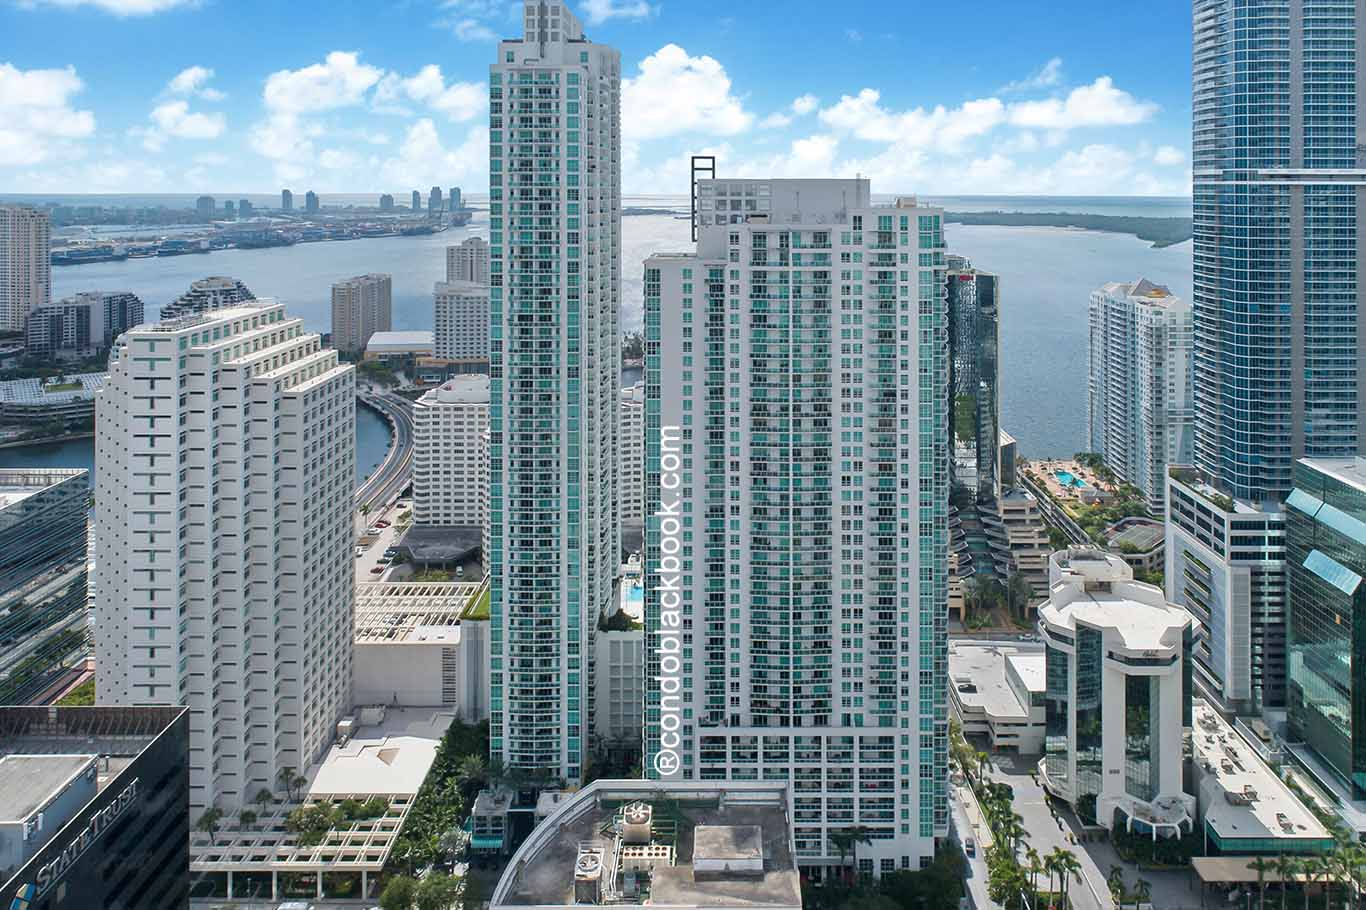 The Plaza on Brickell South Img3